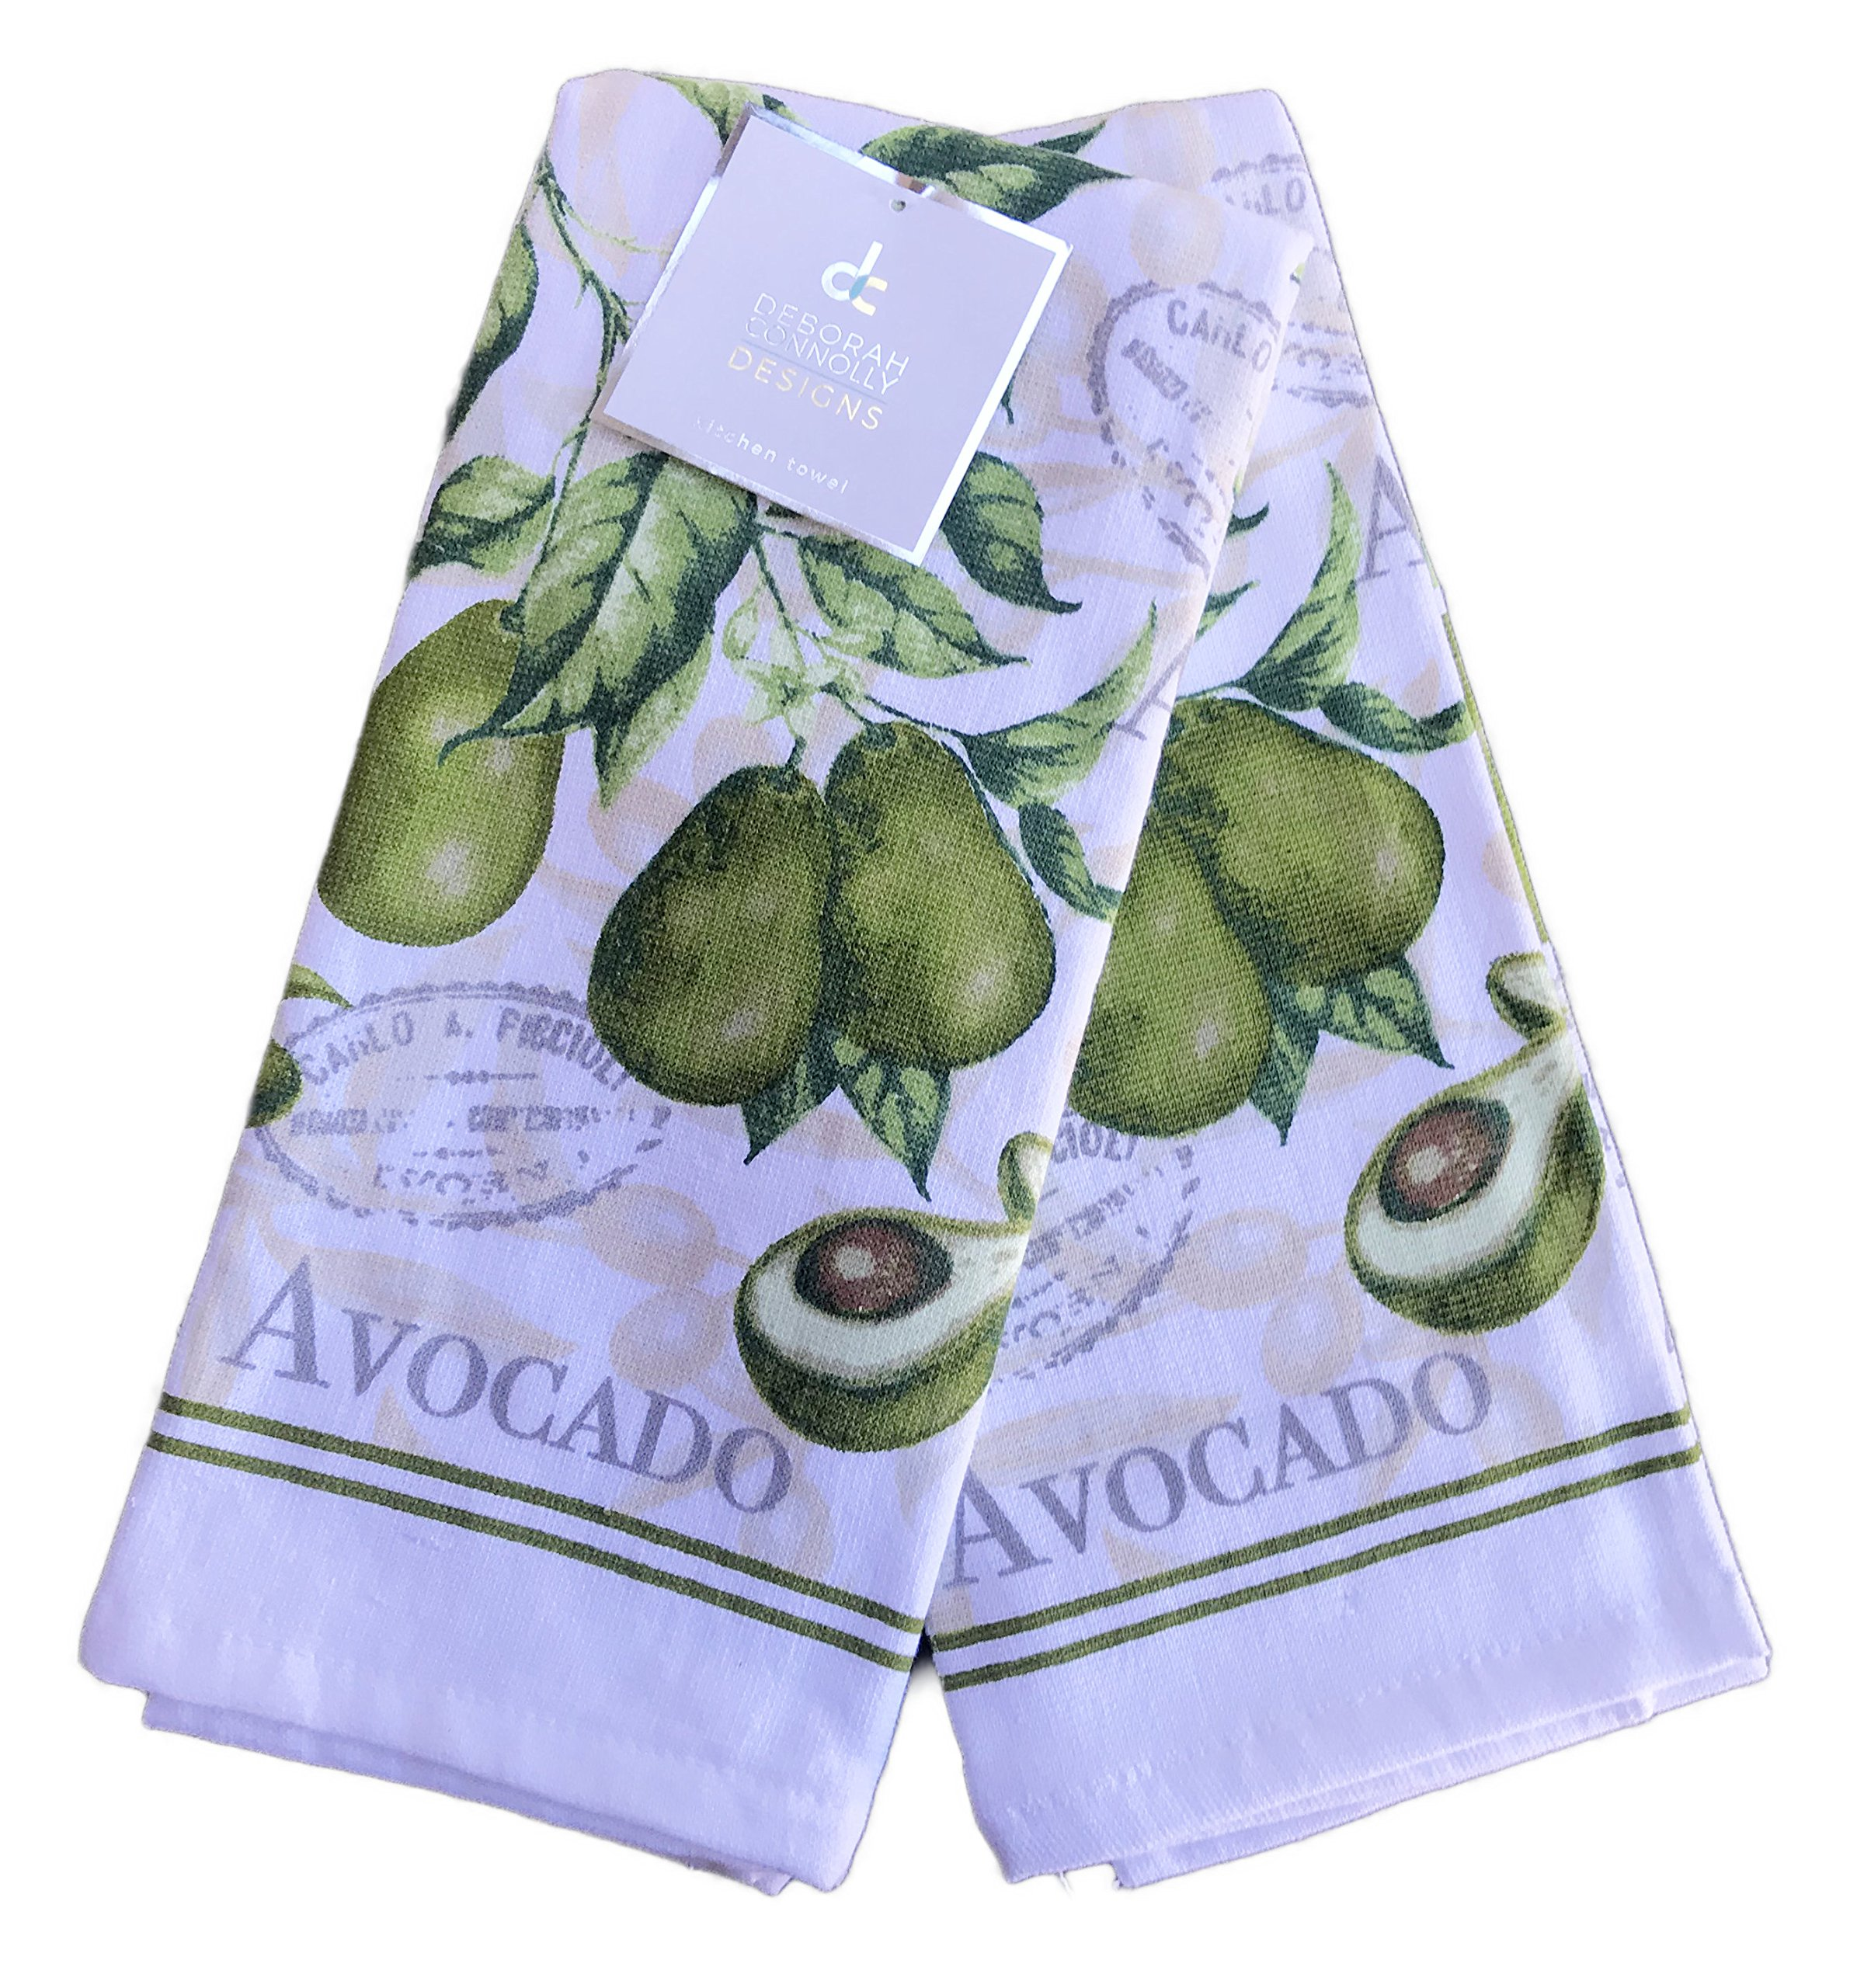 Deborah Connolly Avocado Themed Set of Two Kitchen Towels